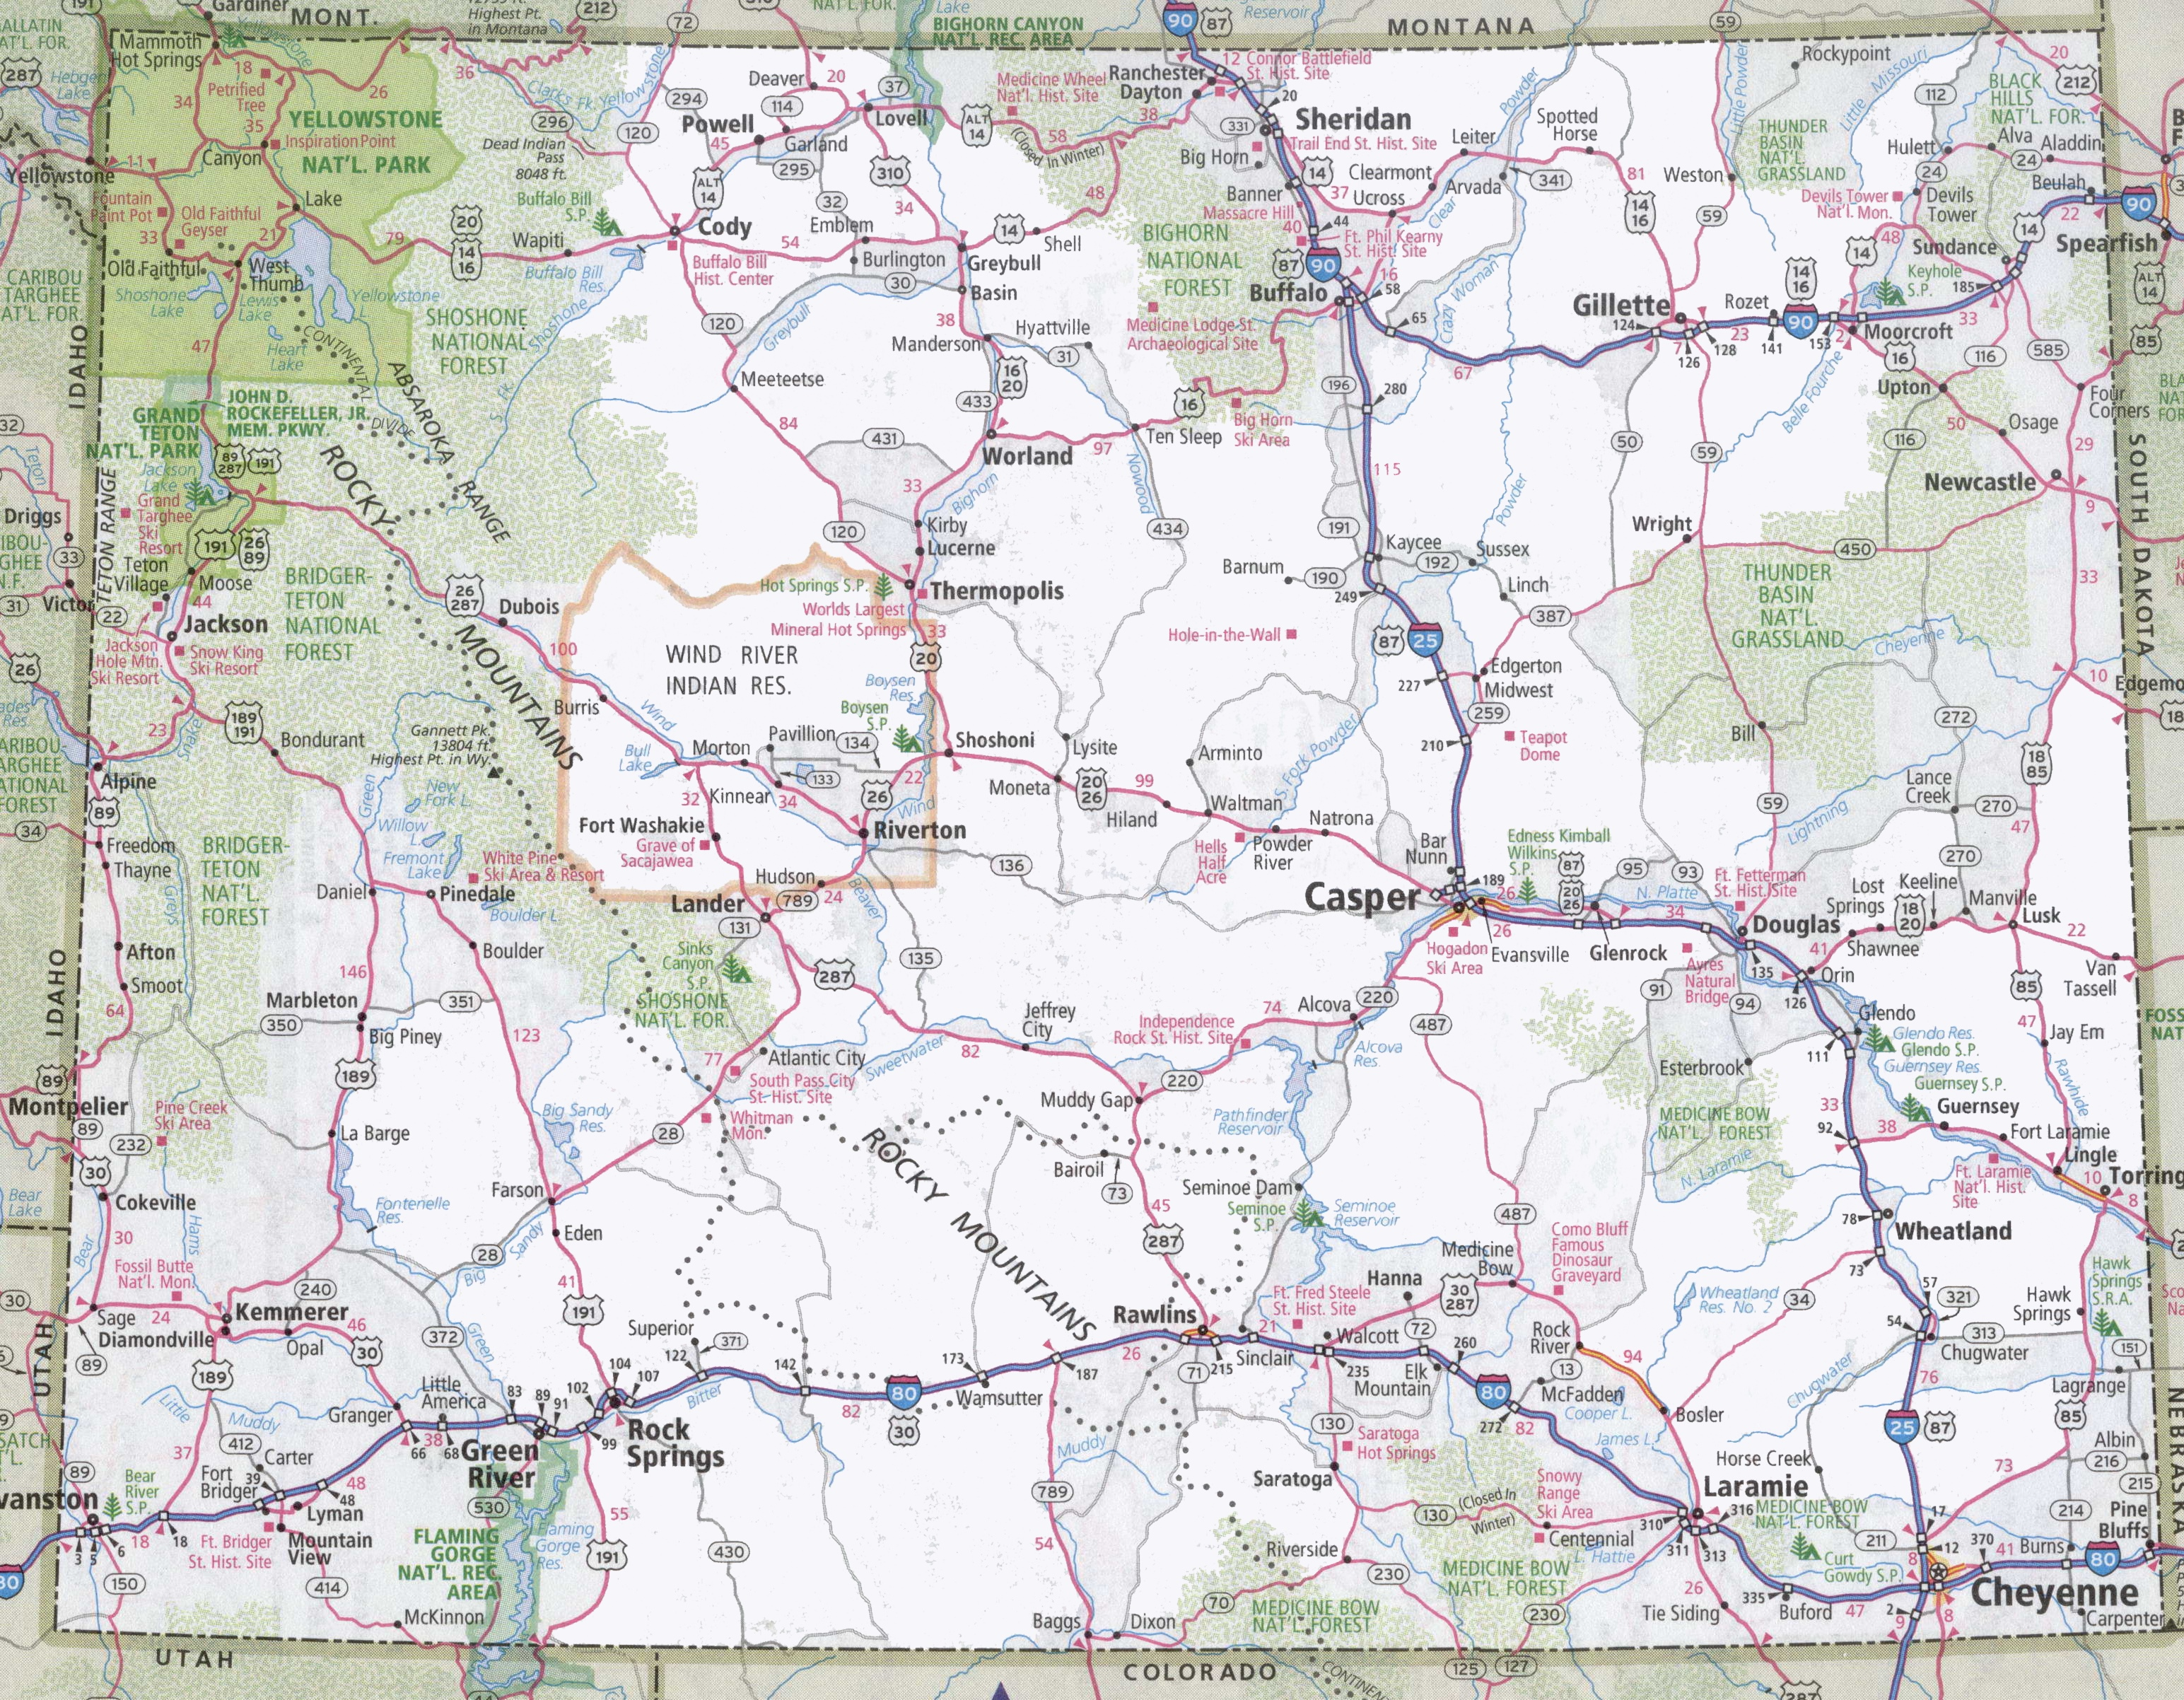 Map Of Wyoming Cities Wyoming State Maps | USA | Maps of Wyoming (WY)